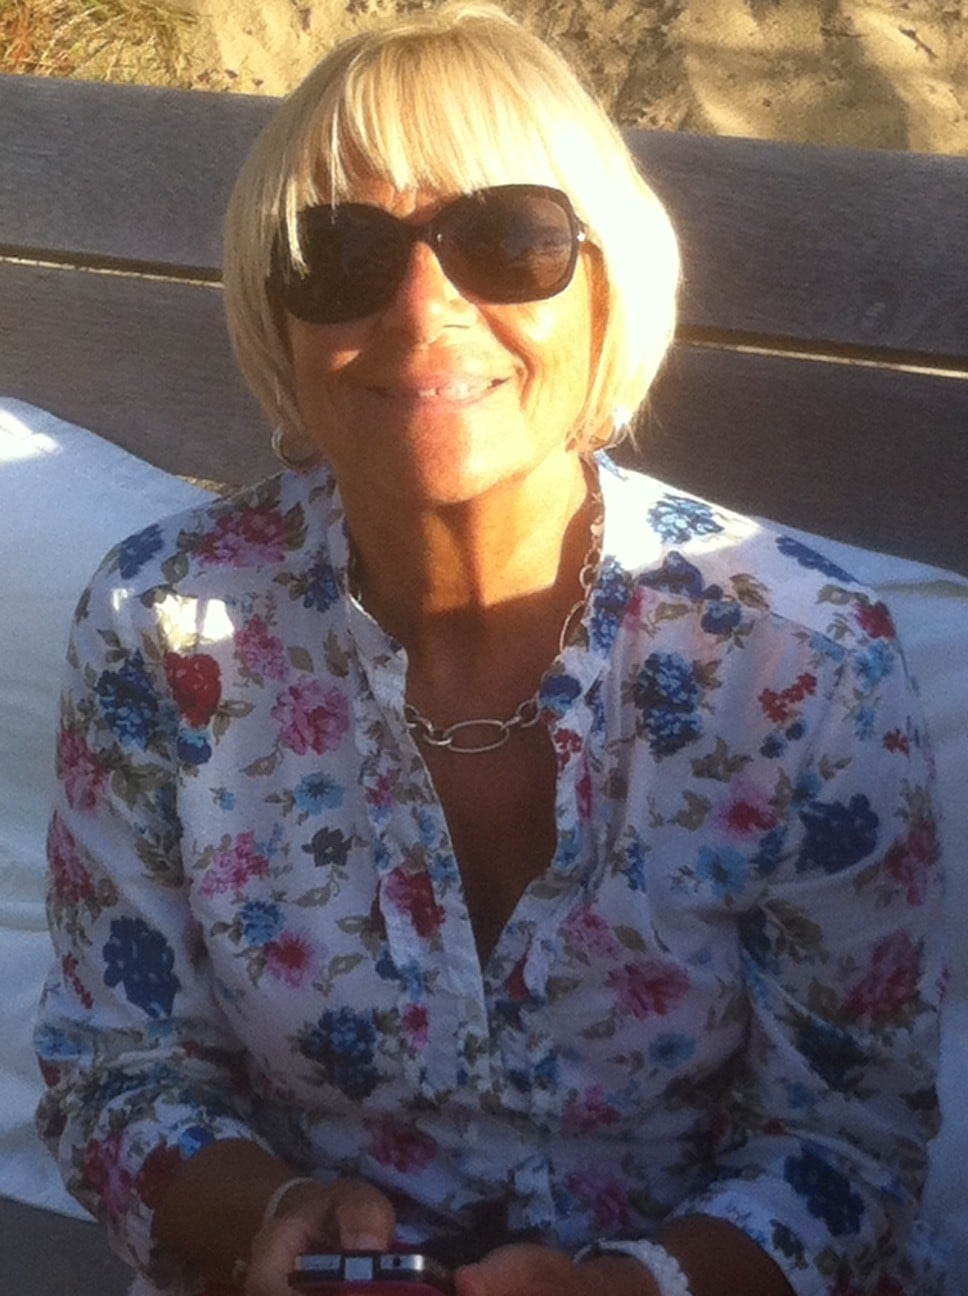 Louisette from Arcachon